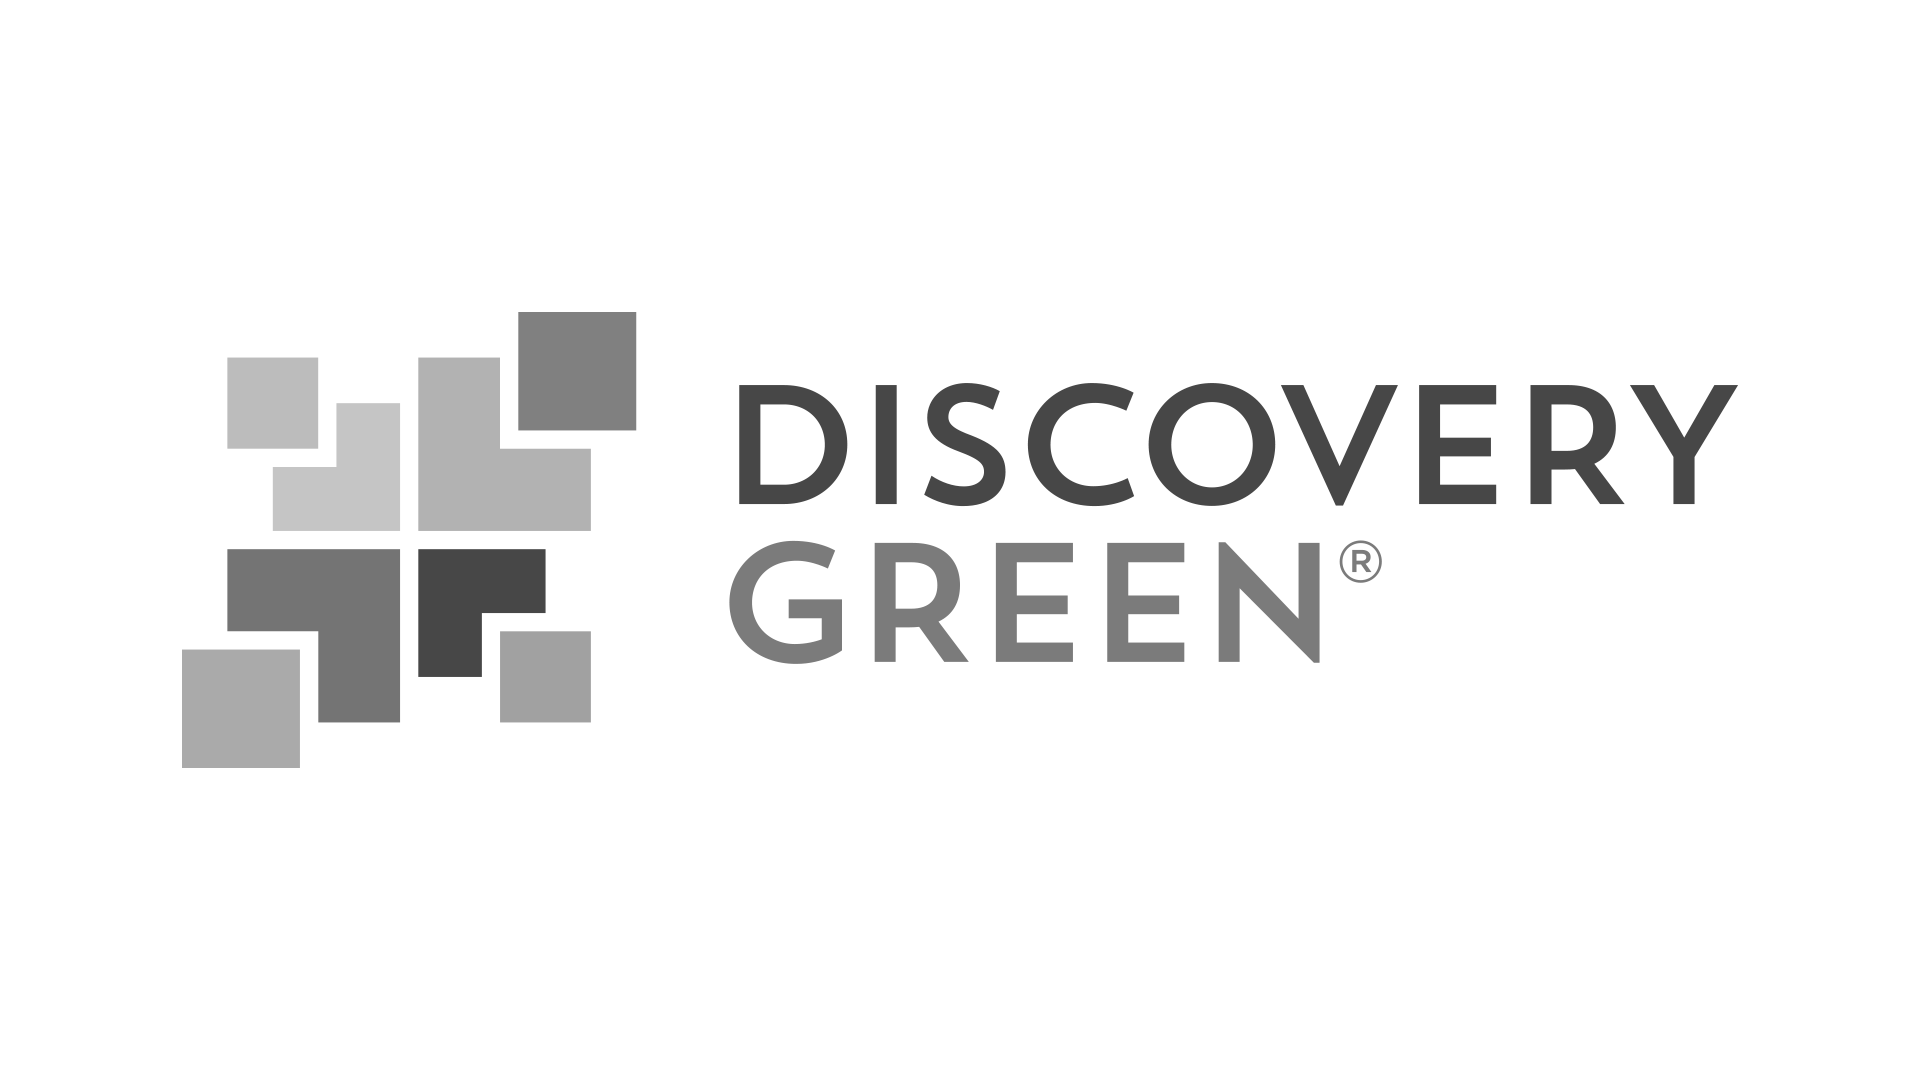 Discovery Green CKP logo.png